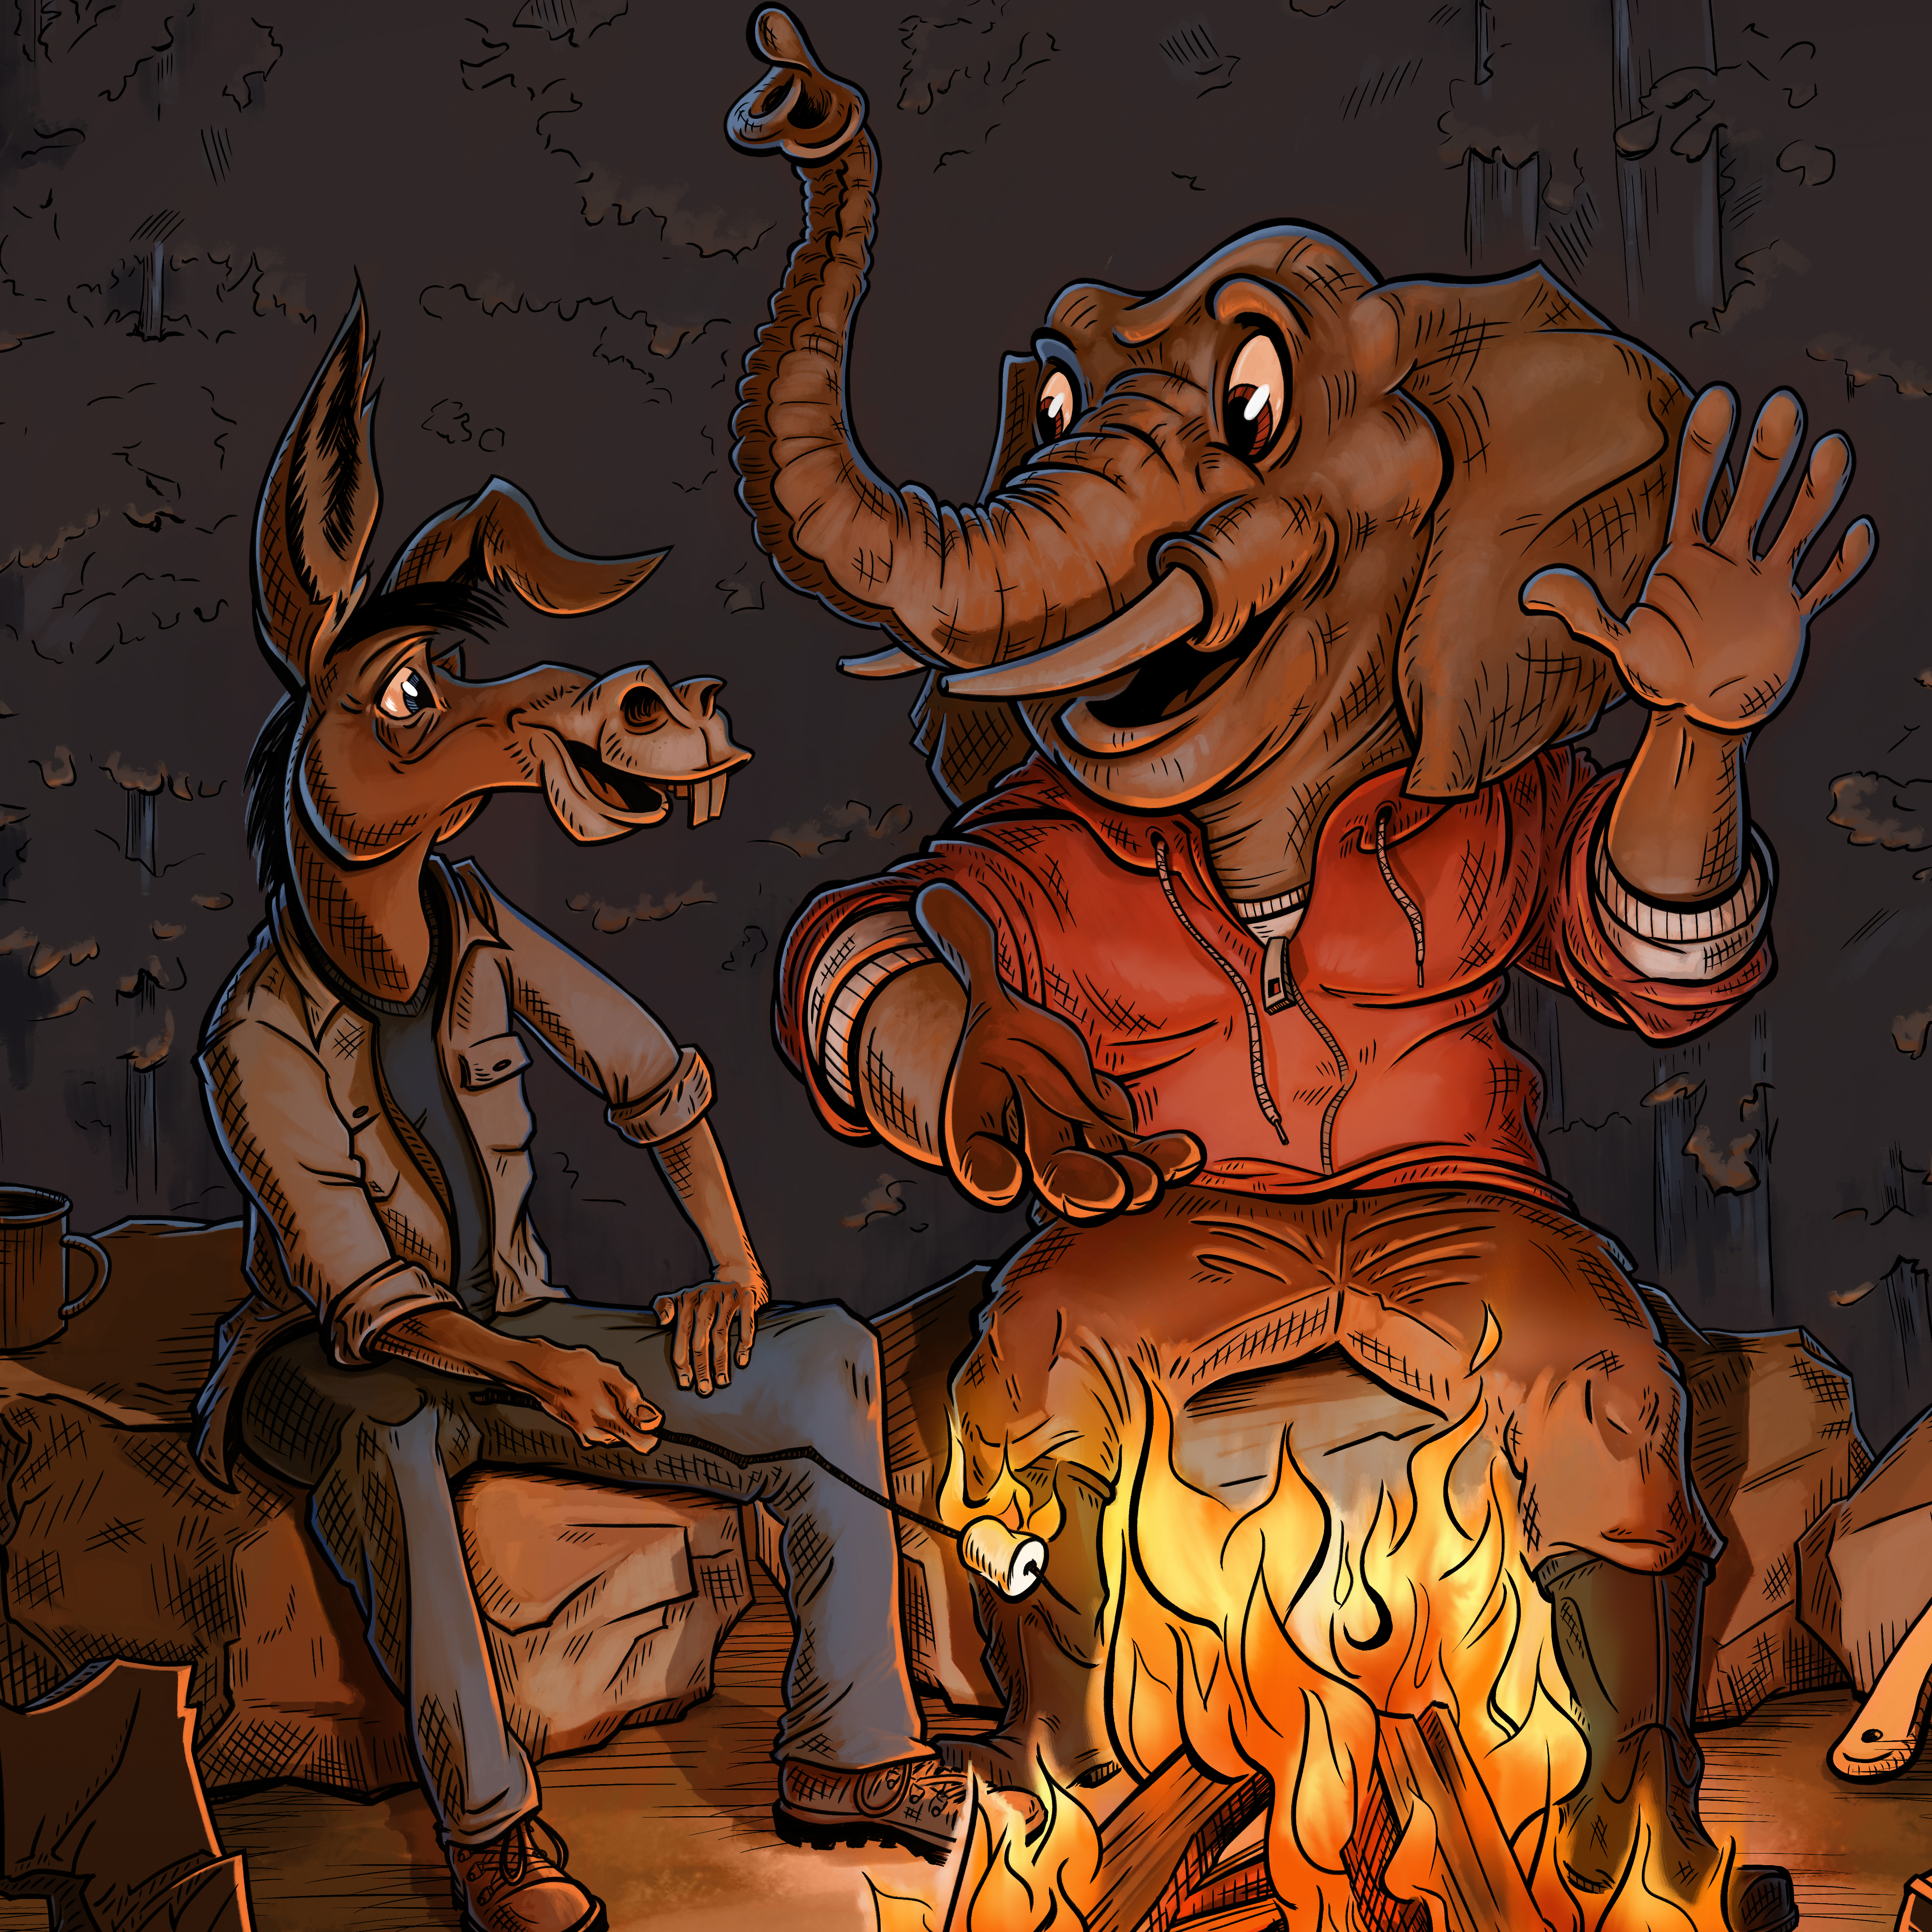 Democrat and Republican caricatures experiencing nature and outdoor activity around a campfire